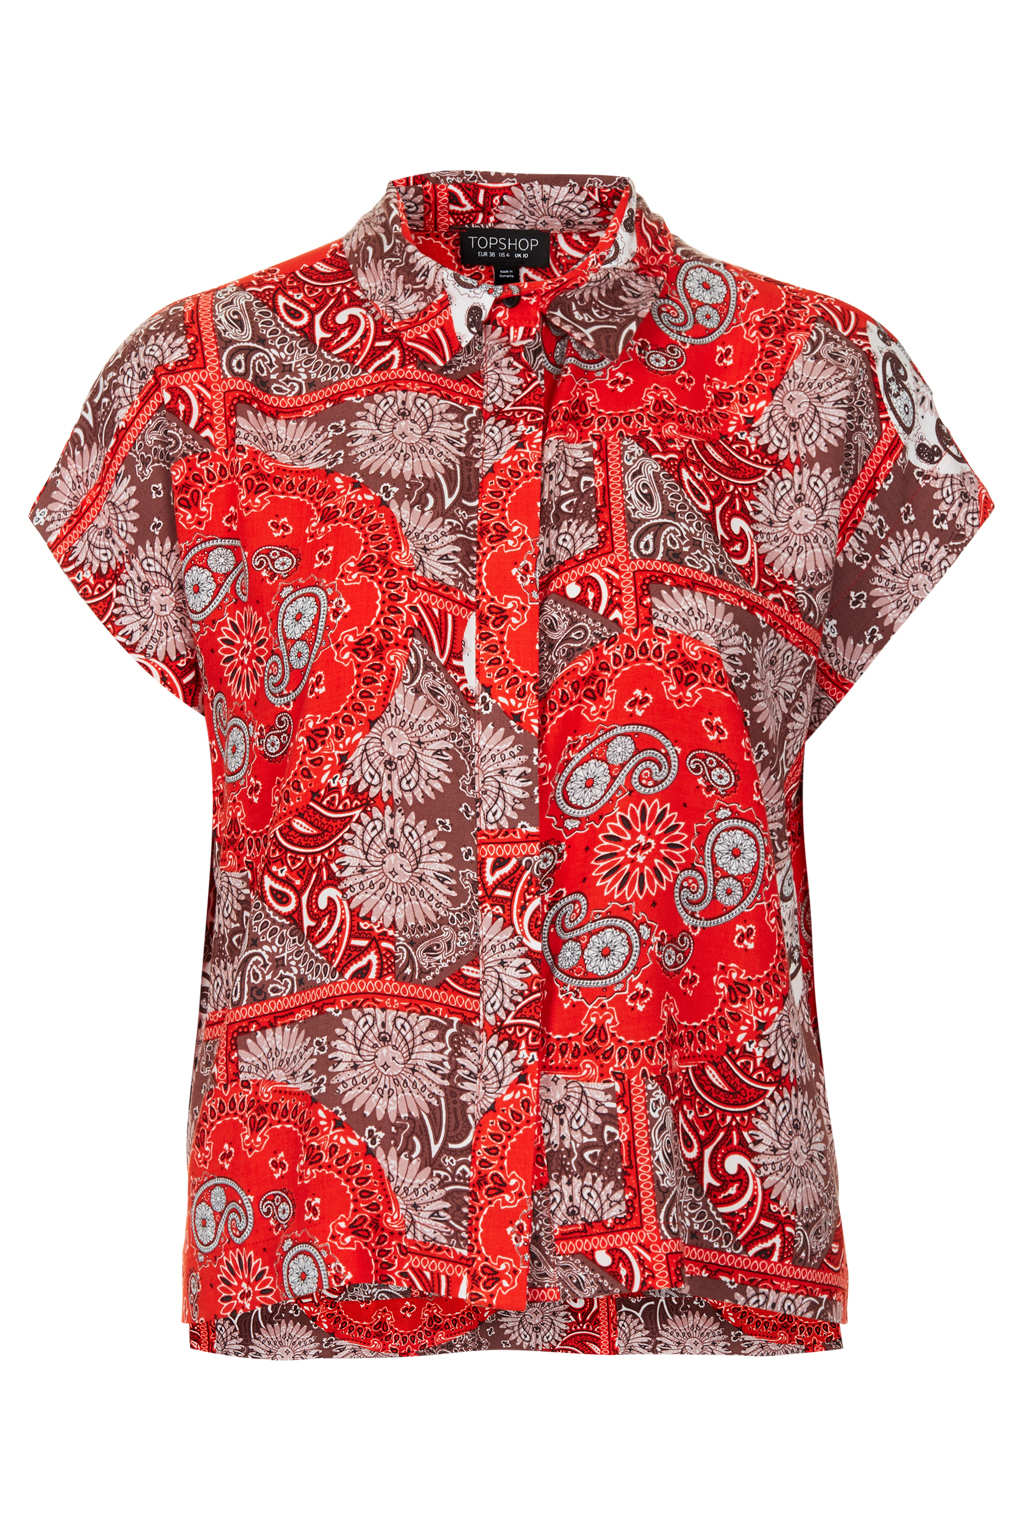 Cover your body with amazing Paisley Bandana t-shirts from Zazzle. Search for your new favorite shirt from thousands of great designs! BBQ Red Paisley Western Bandana Scarf Print T-Shirt. $ 15% Off with code ZAZZFALLPREP. Lt Turquoise Paisley Western Bandana Scarf Print Baby T-Shirt.